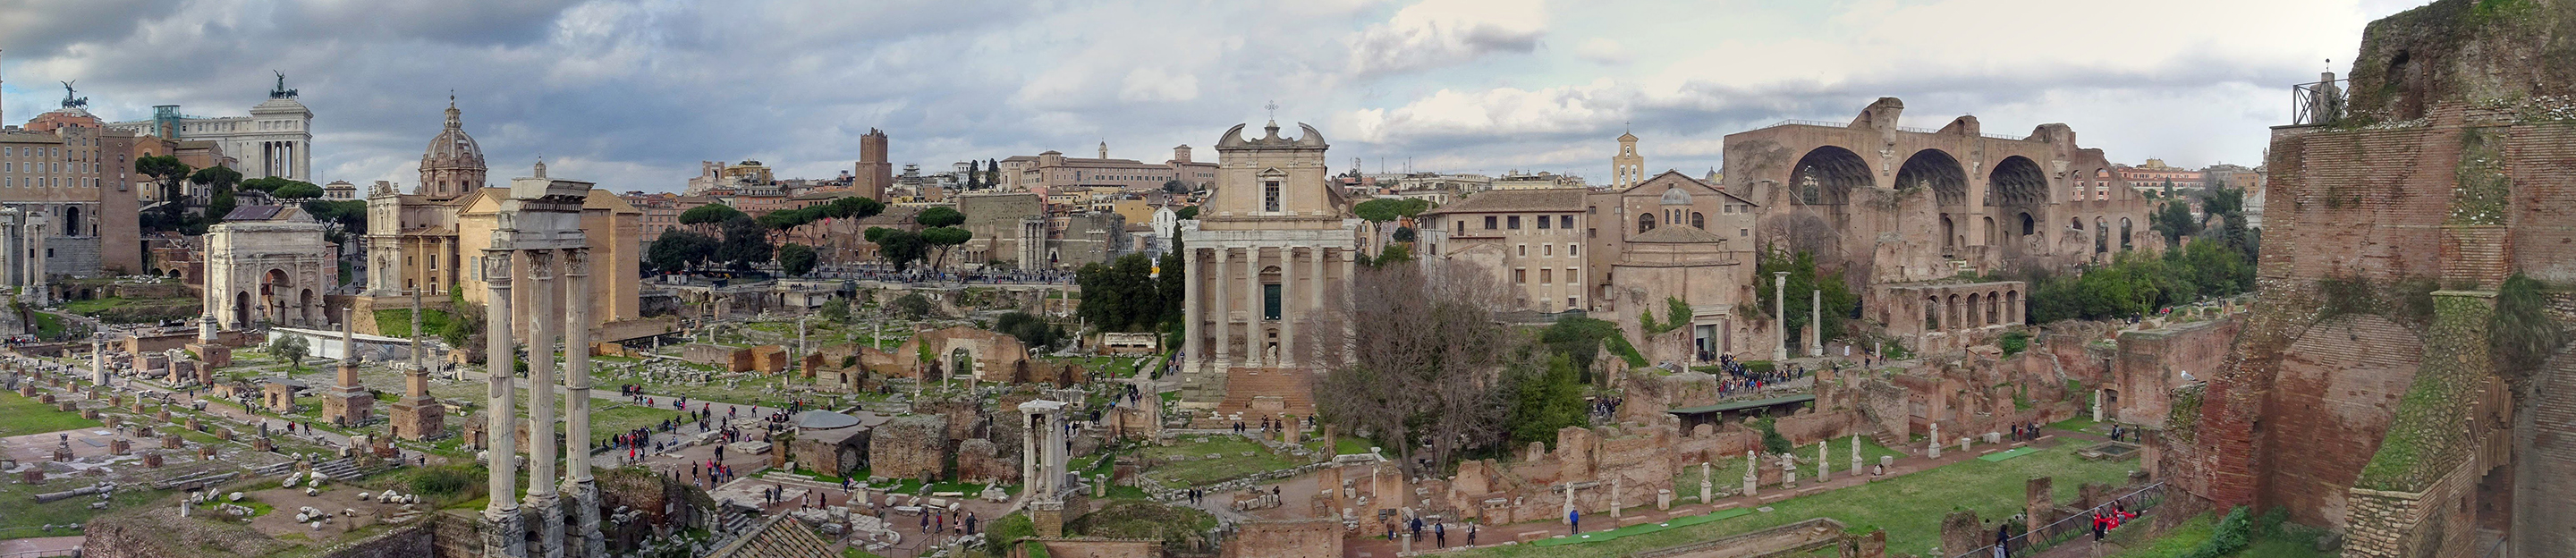 roman forum photo by d marconnet 2019